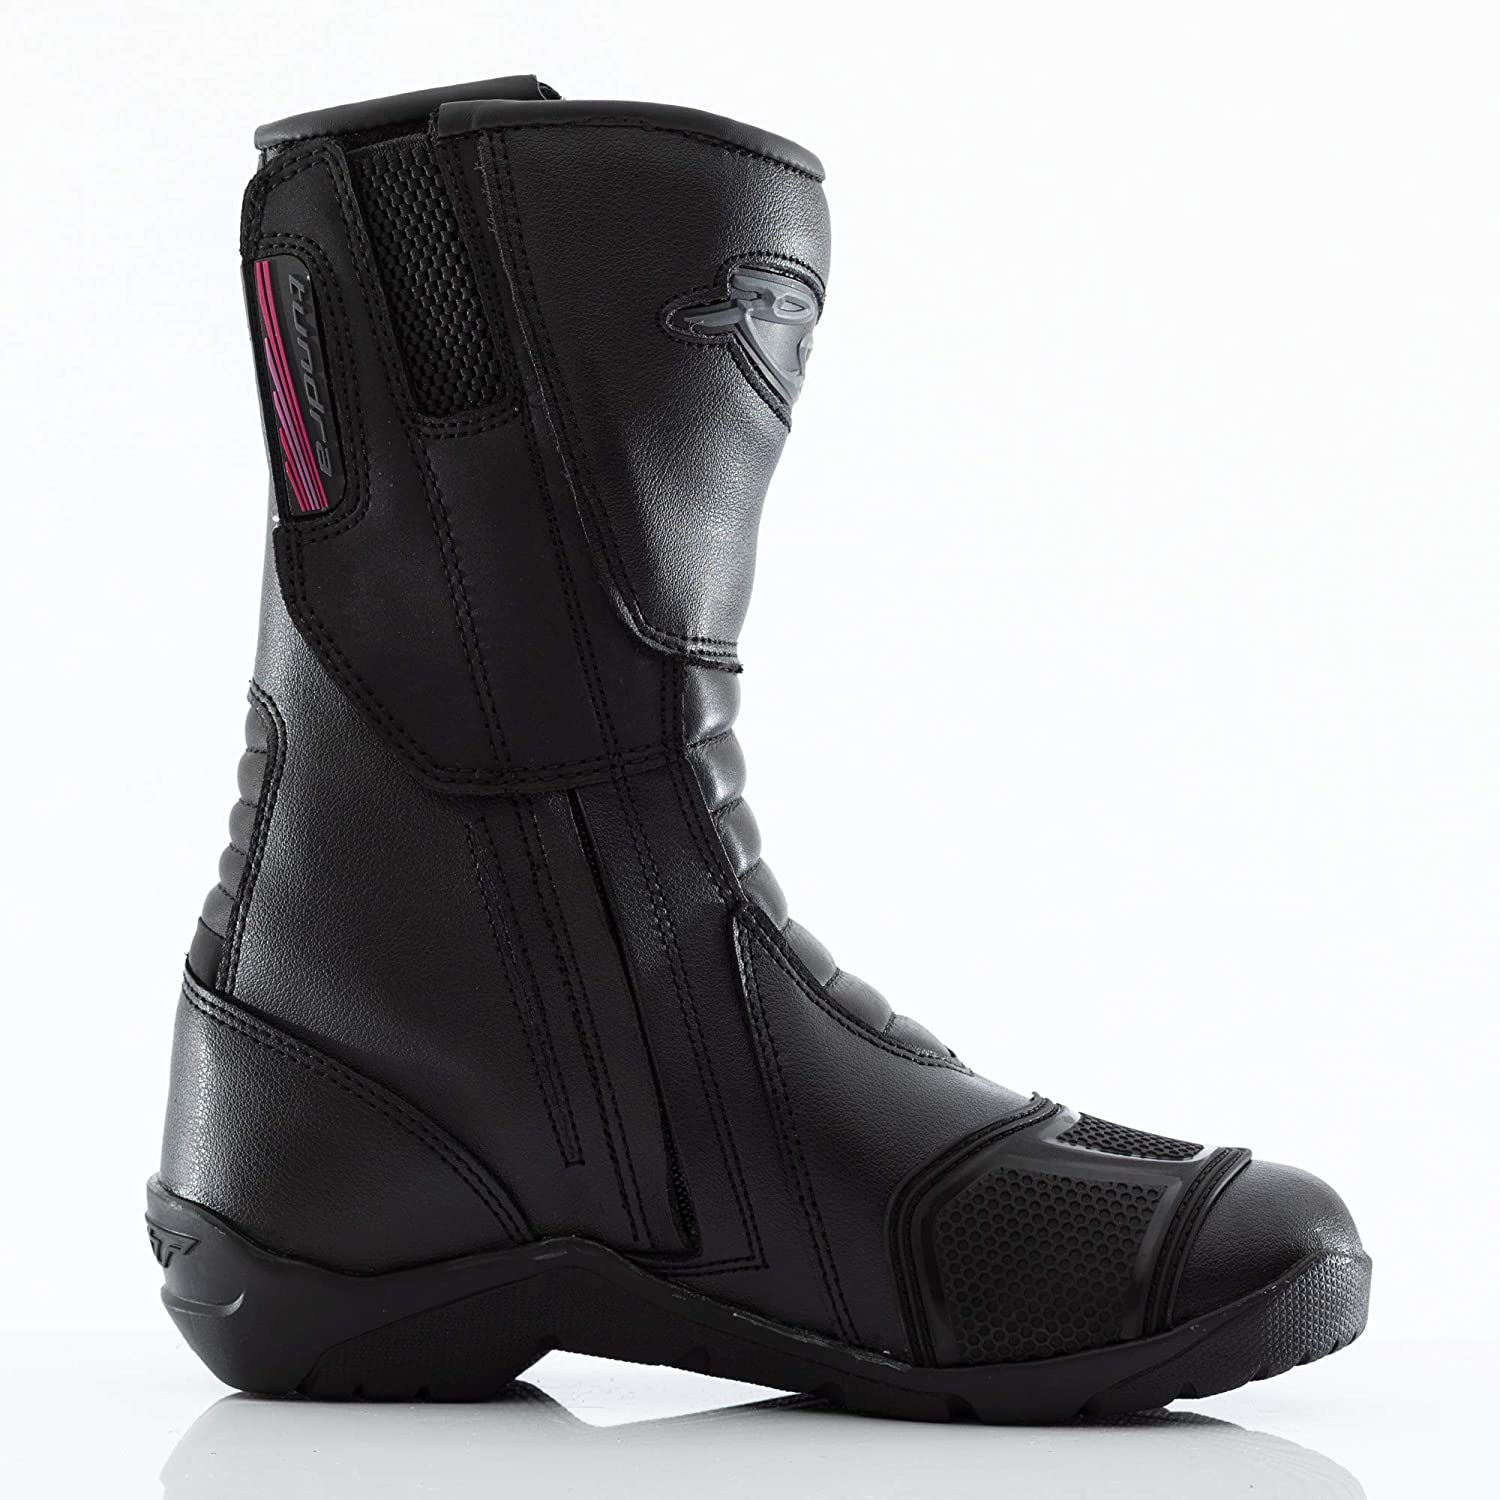 RST 1706 TUNDRA MOTORBIKE LADIES BOOTS Motorcycle Biker Rider Waterproof All Weather Women Touring Urban Sports Racing CE Certified Boot